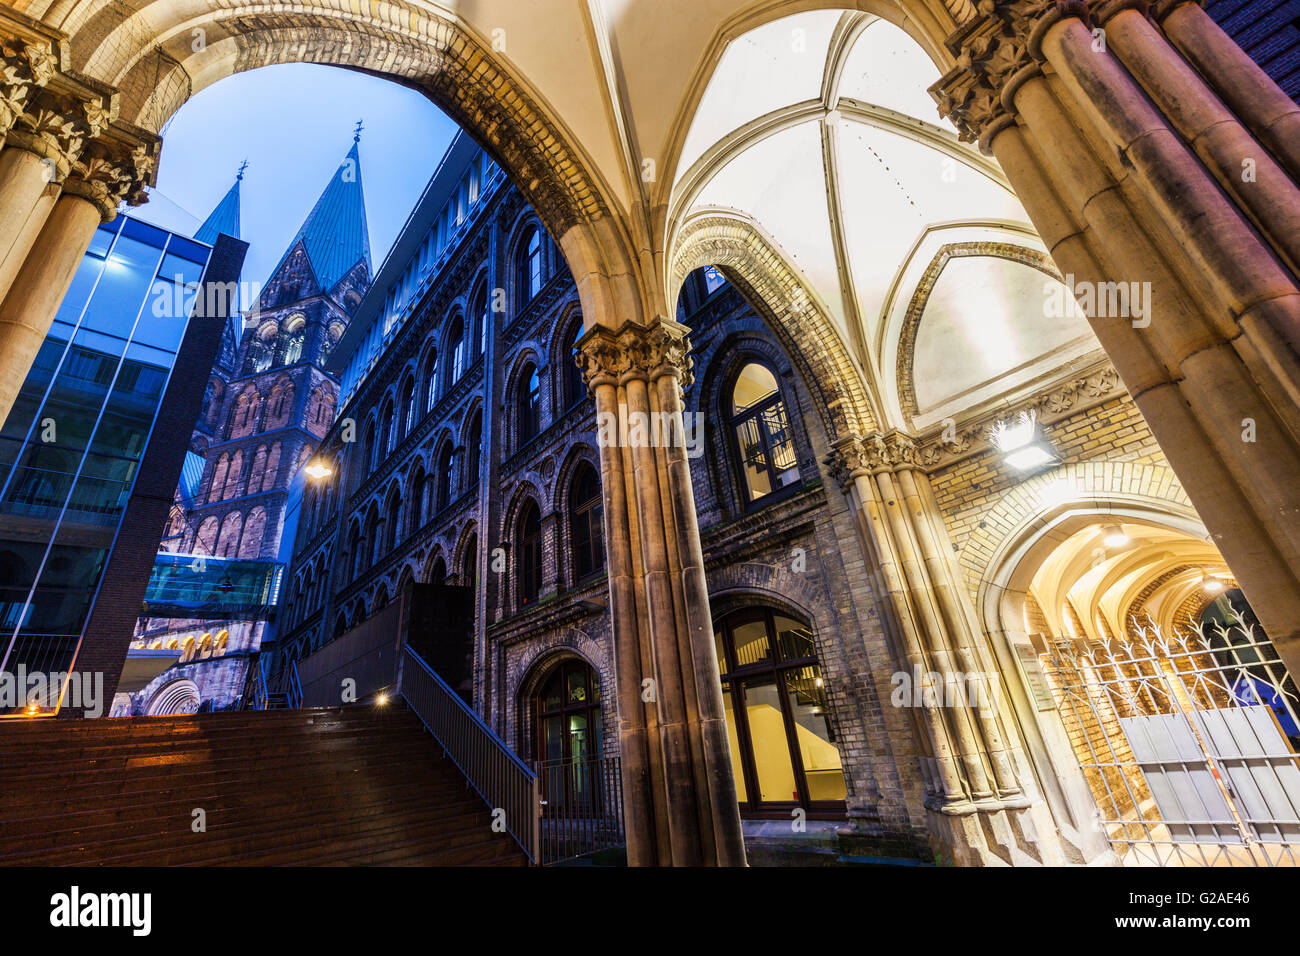 bremen cathedral bremen germany stock photo 104722134 alamy. Black Bedroom Furniture Sets. Home Design Ideas